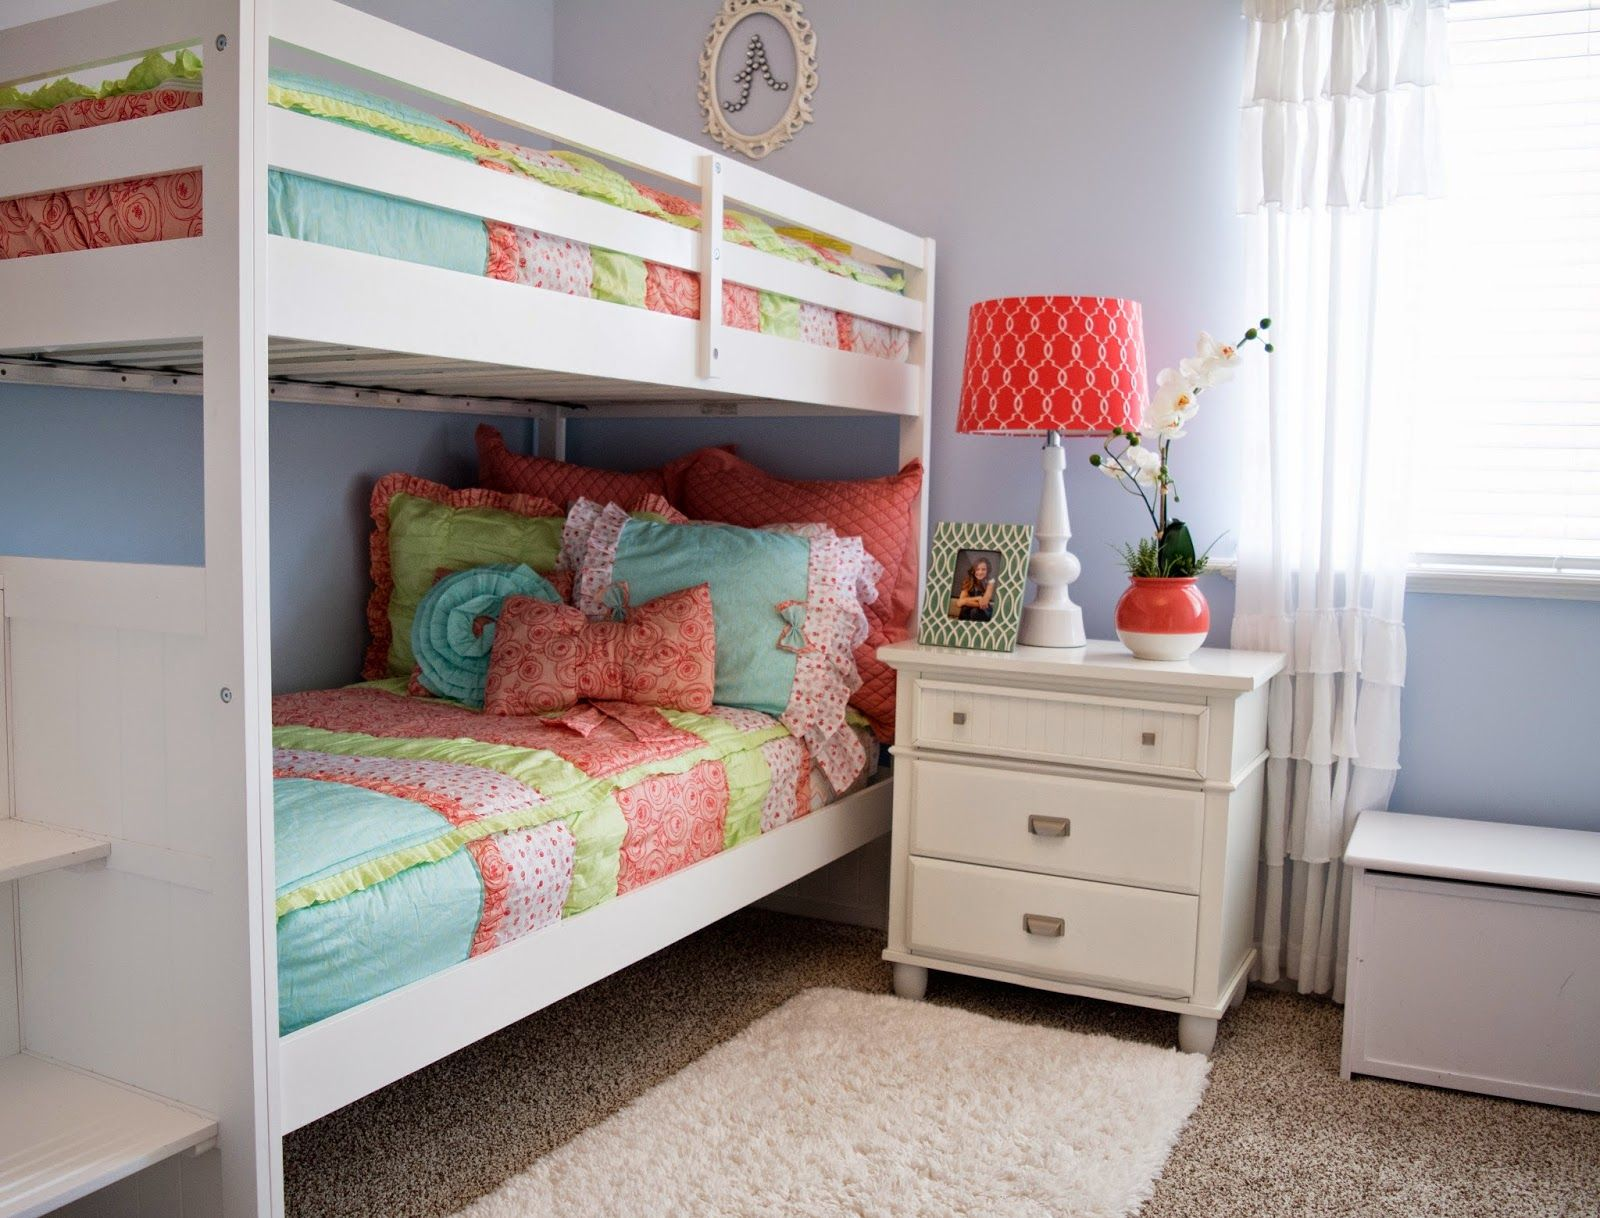 The PERFECT bedding for bunk beds. How awesome is this